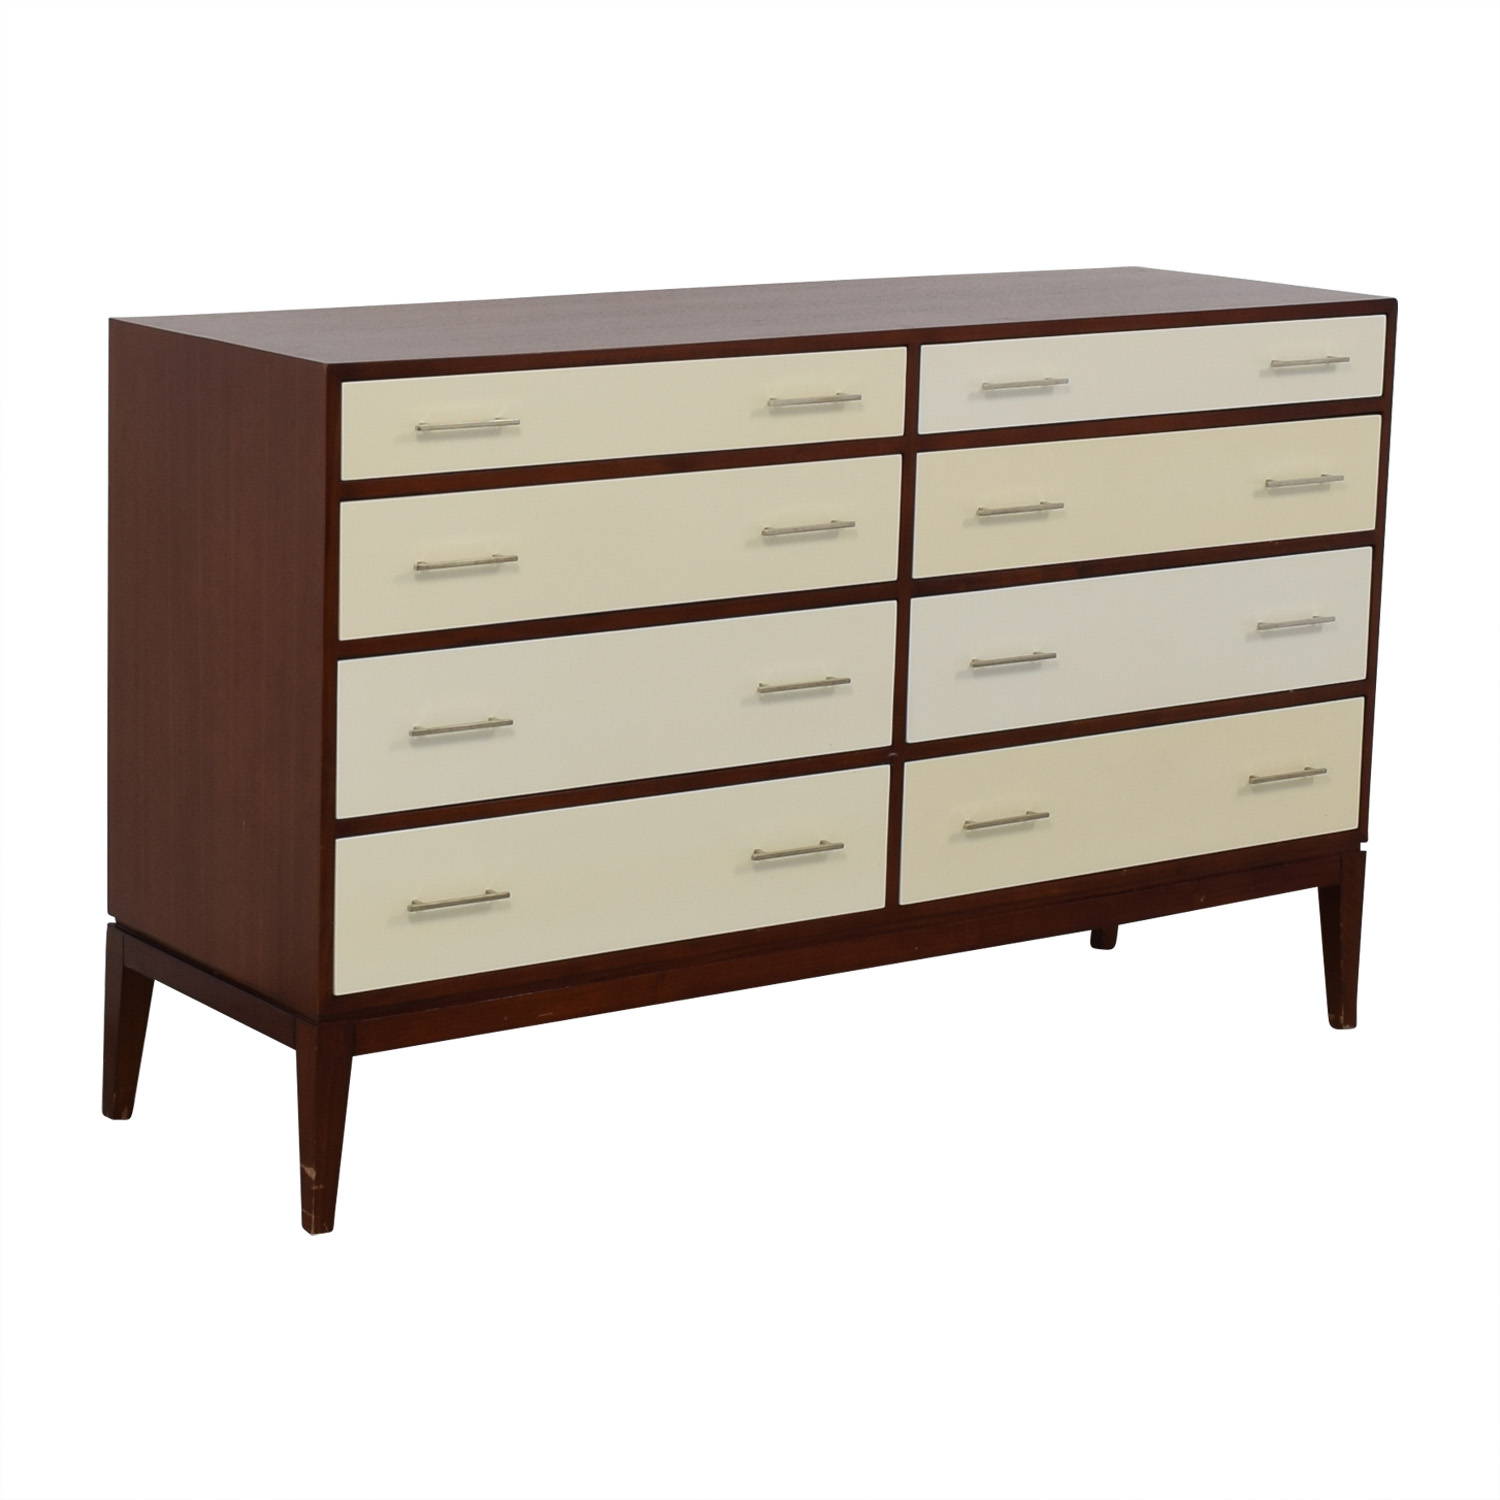 Mitchell Gold + Bob Williams Mitchell Gold + Bob Williams 8 Drawer Dresser price